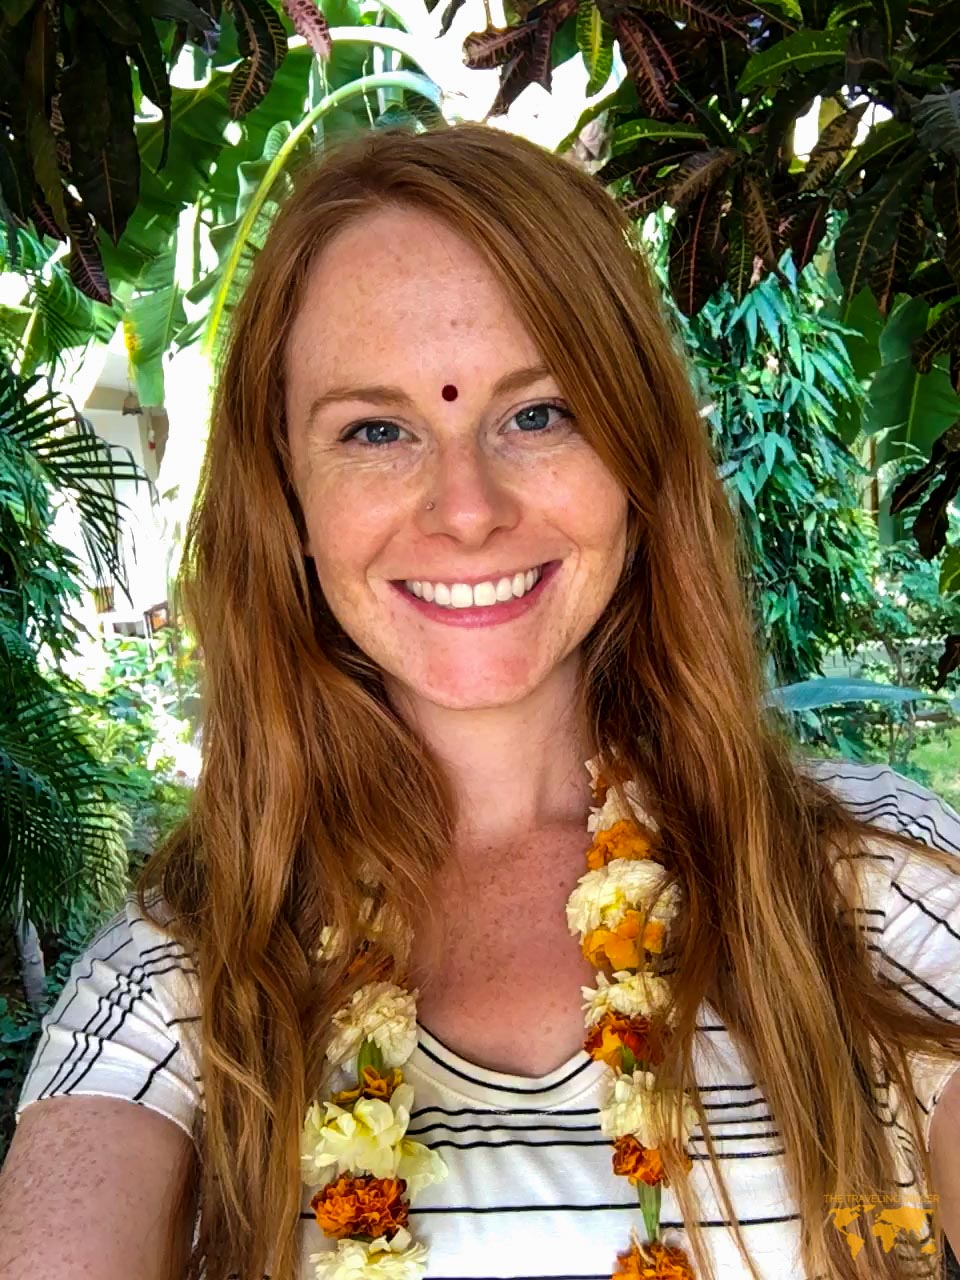 WHAT TO WEAR IN INDIA FOR FEMALE TRAVELERS: MAKE UP